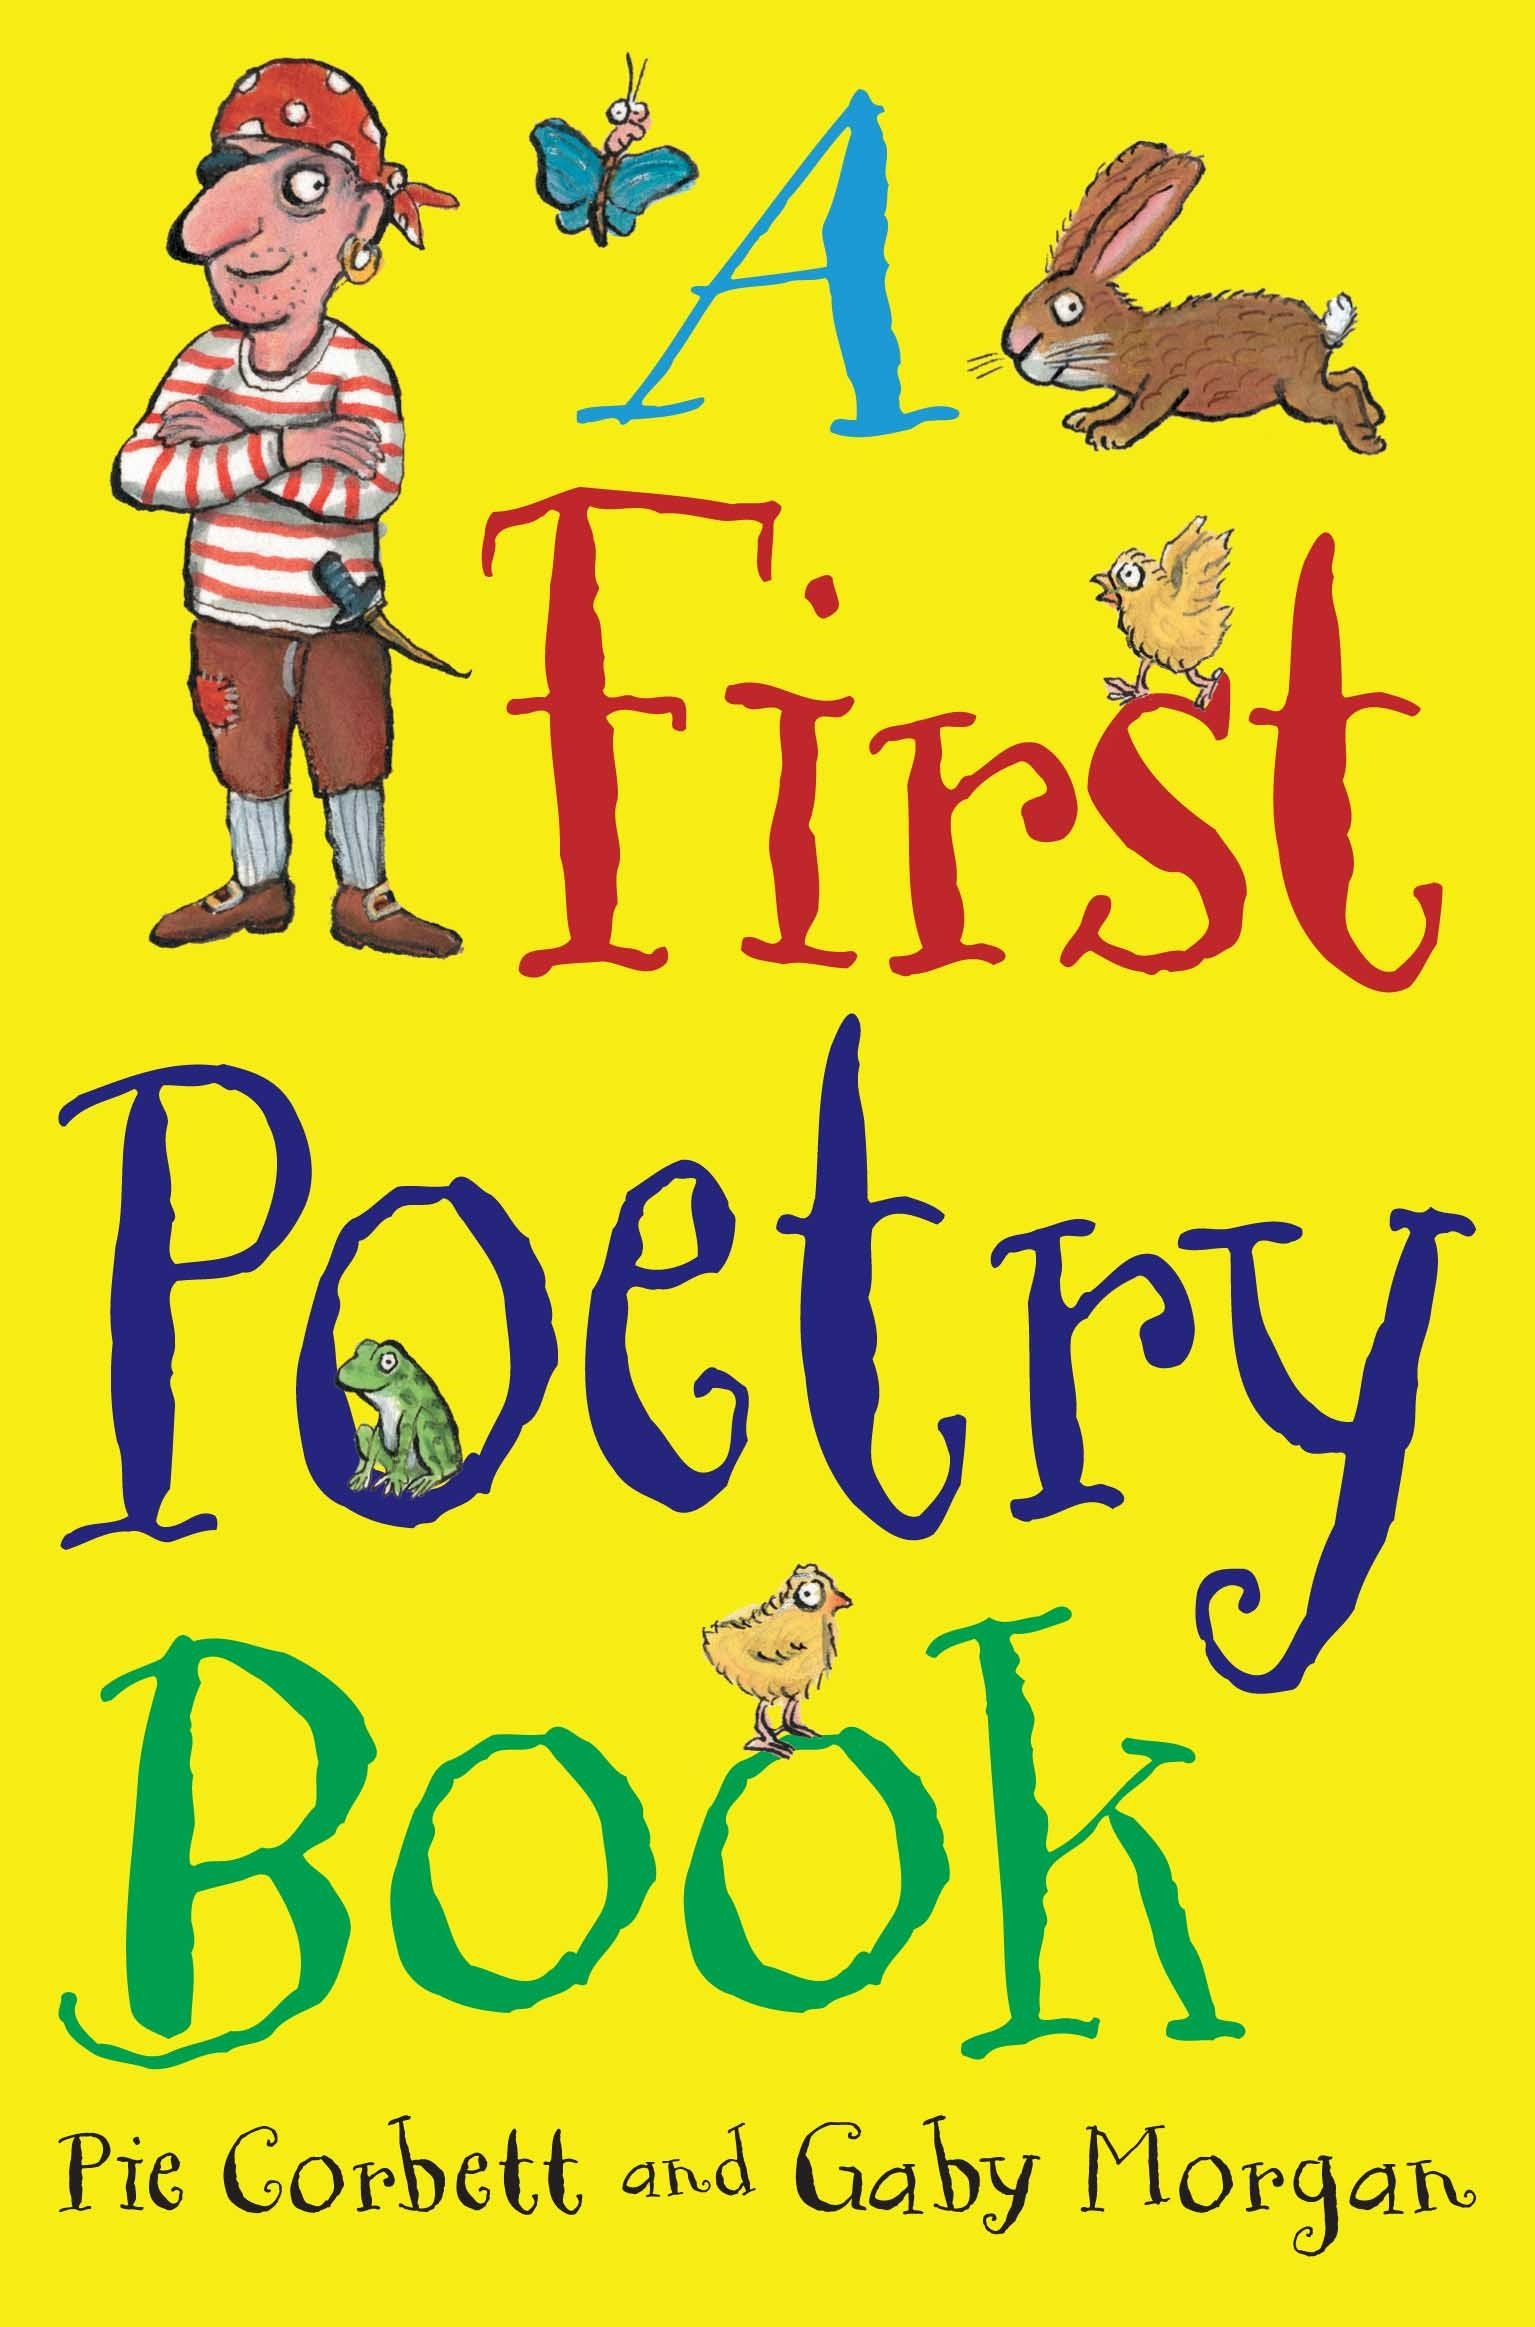 Worksheet Poetry Books For Children a first poetry book macmillan pie corbett gaby morgan axel schaffer 9780330543743 amazon com books